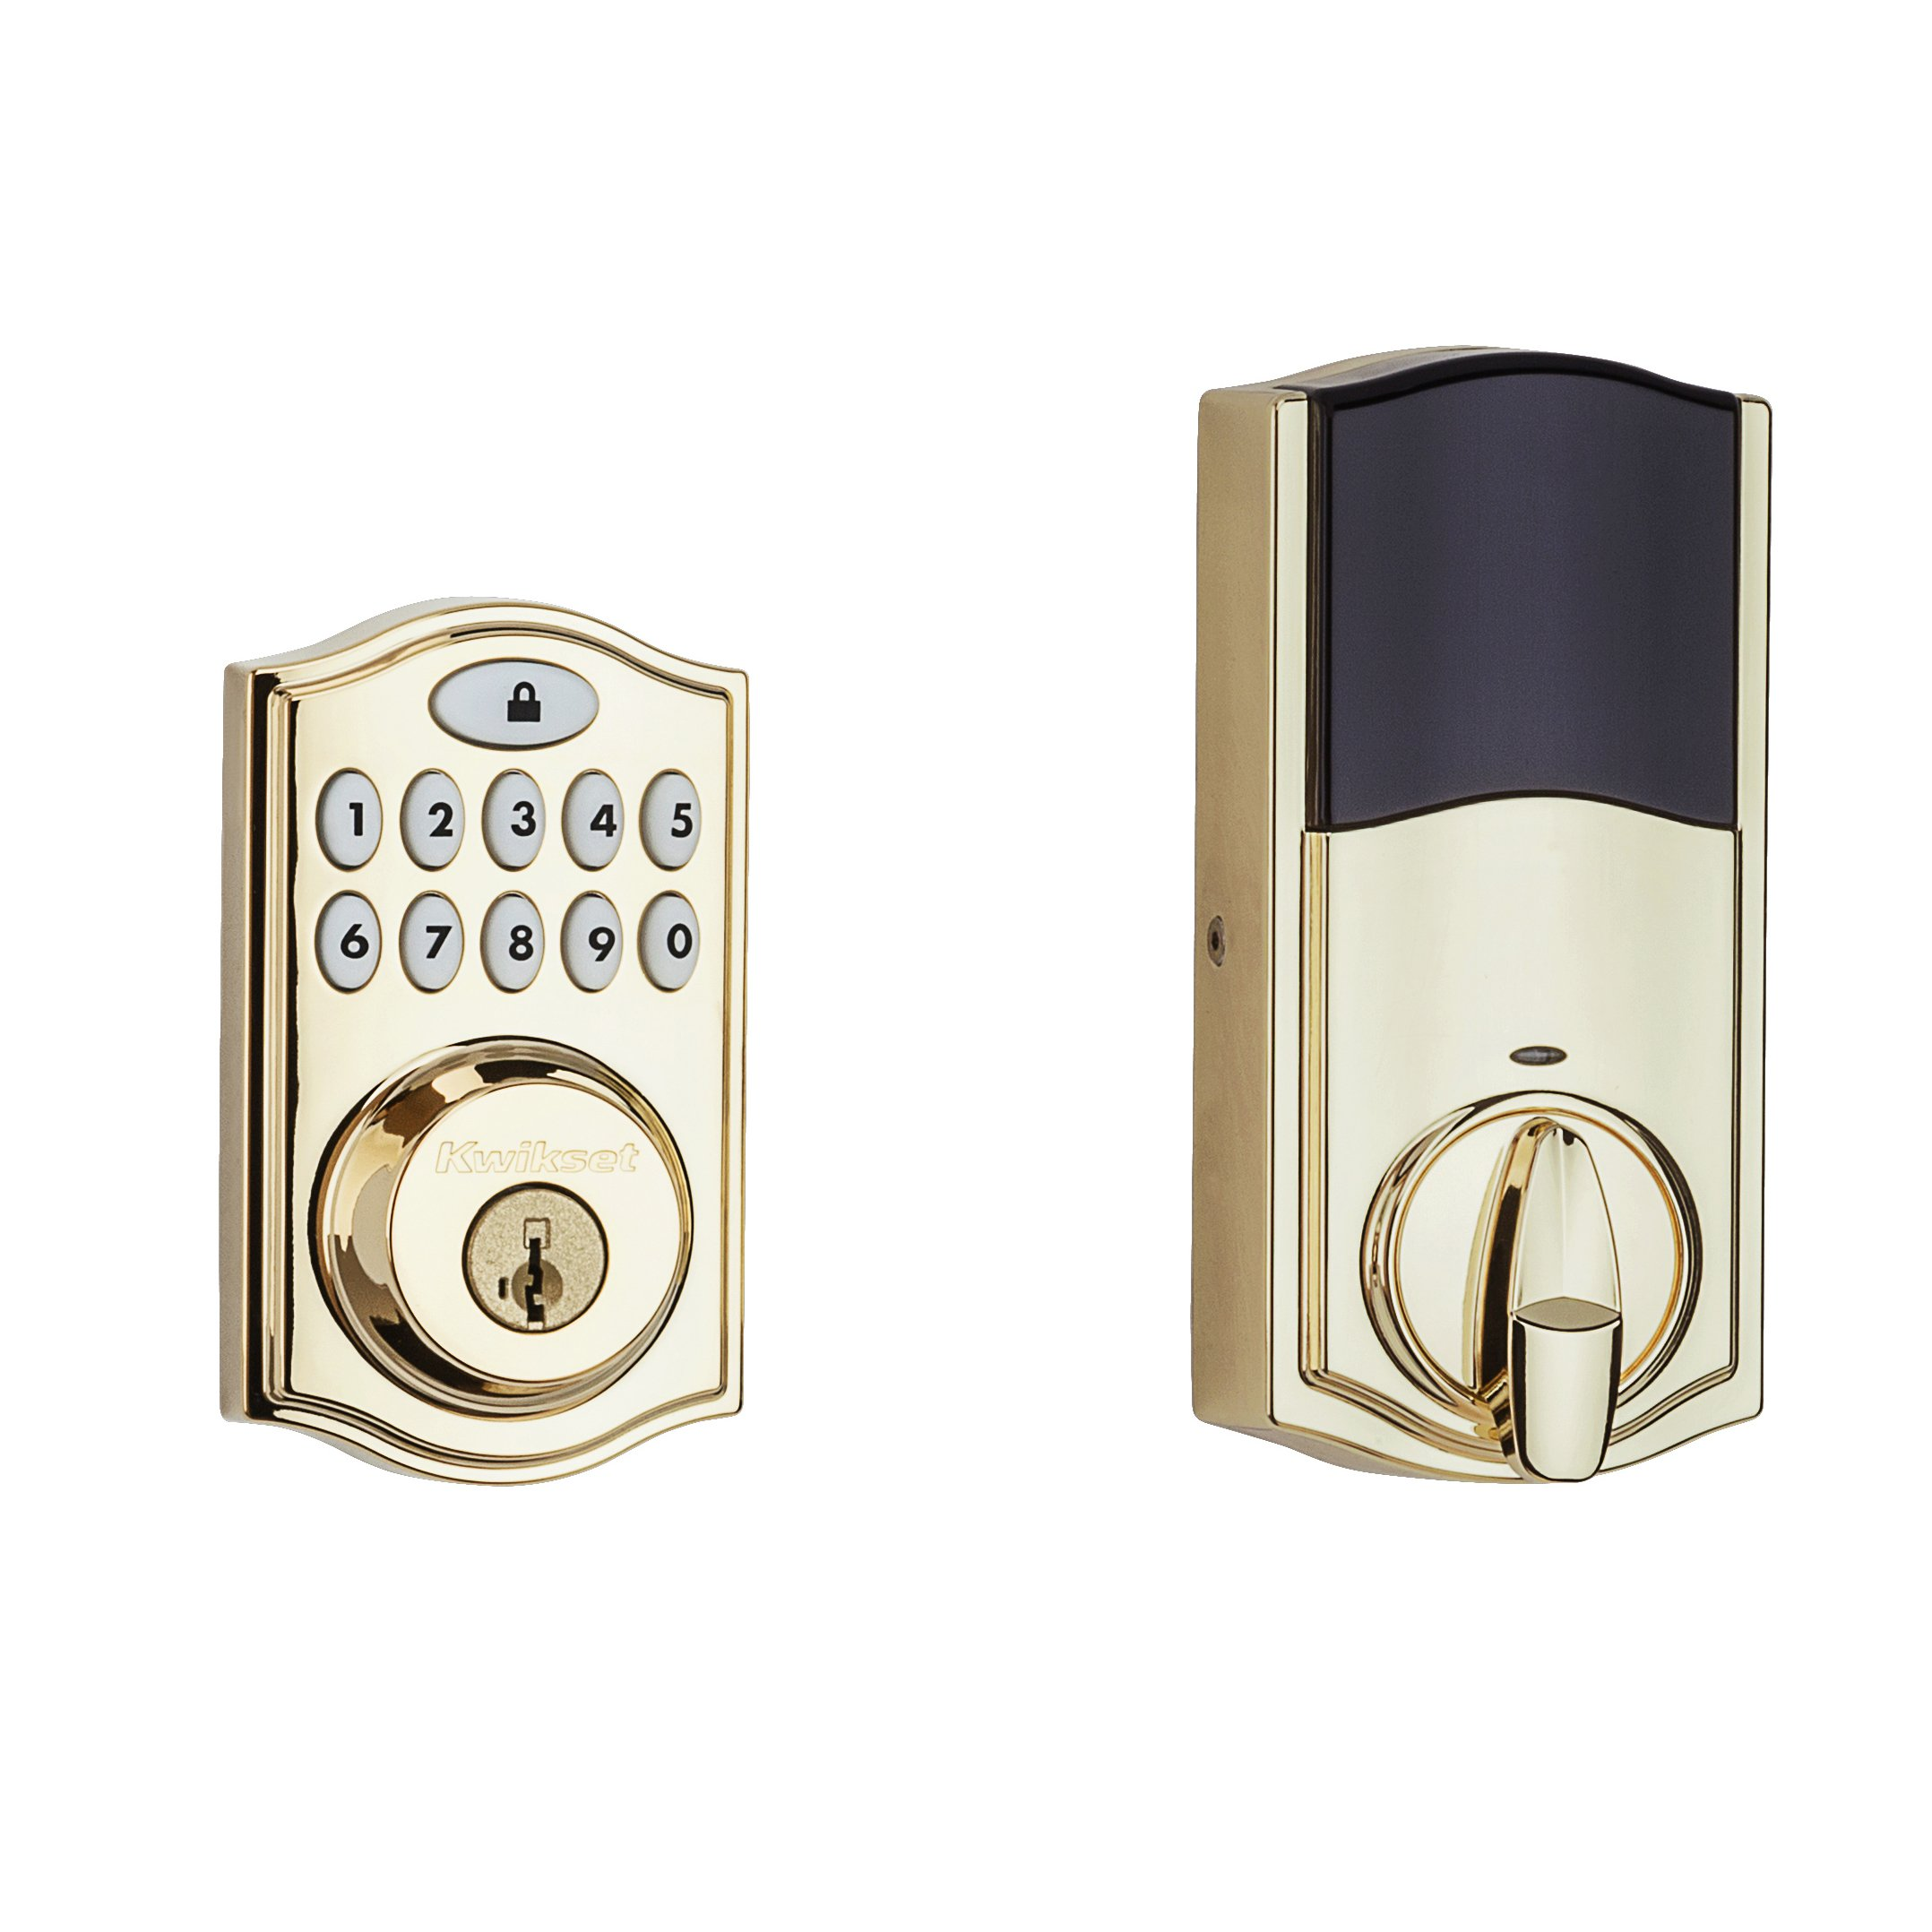 Kwikset 914 Z-Wave SmartCode Electronic UL Deadbolt, Works with Amazon Alexa via SmartThings, Wink, or Iris featuring SmartKey in Polished Brass